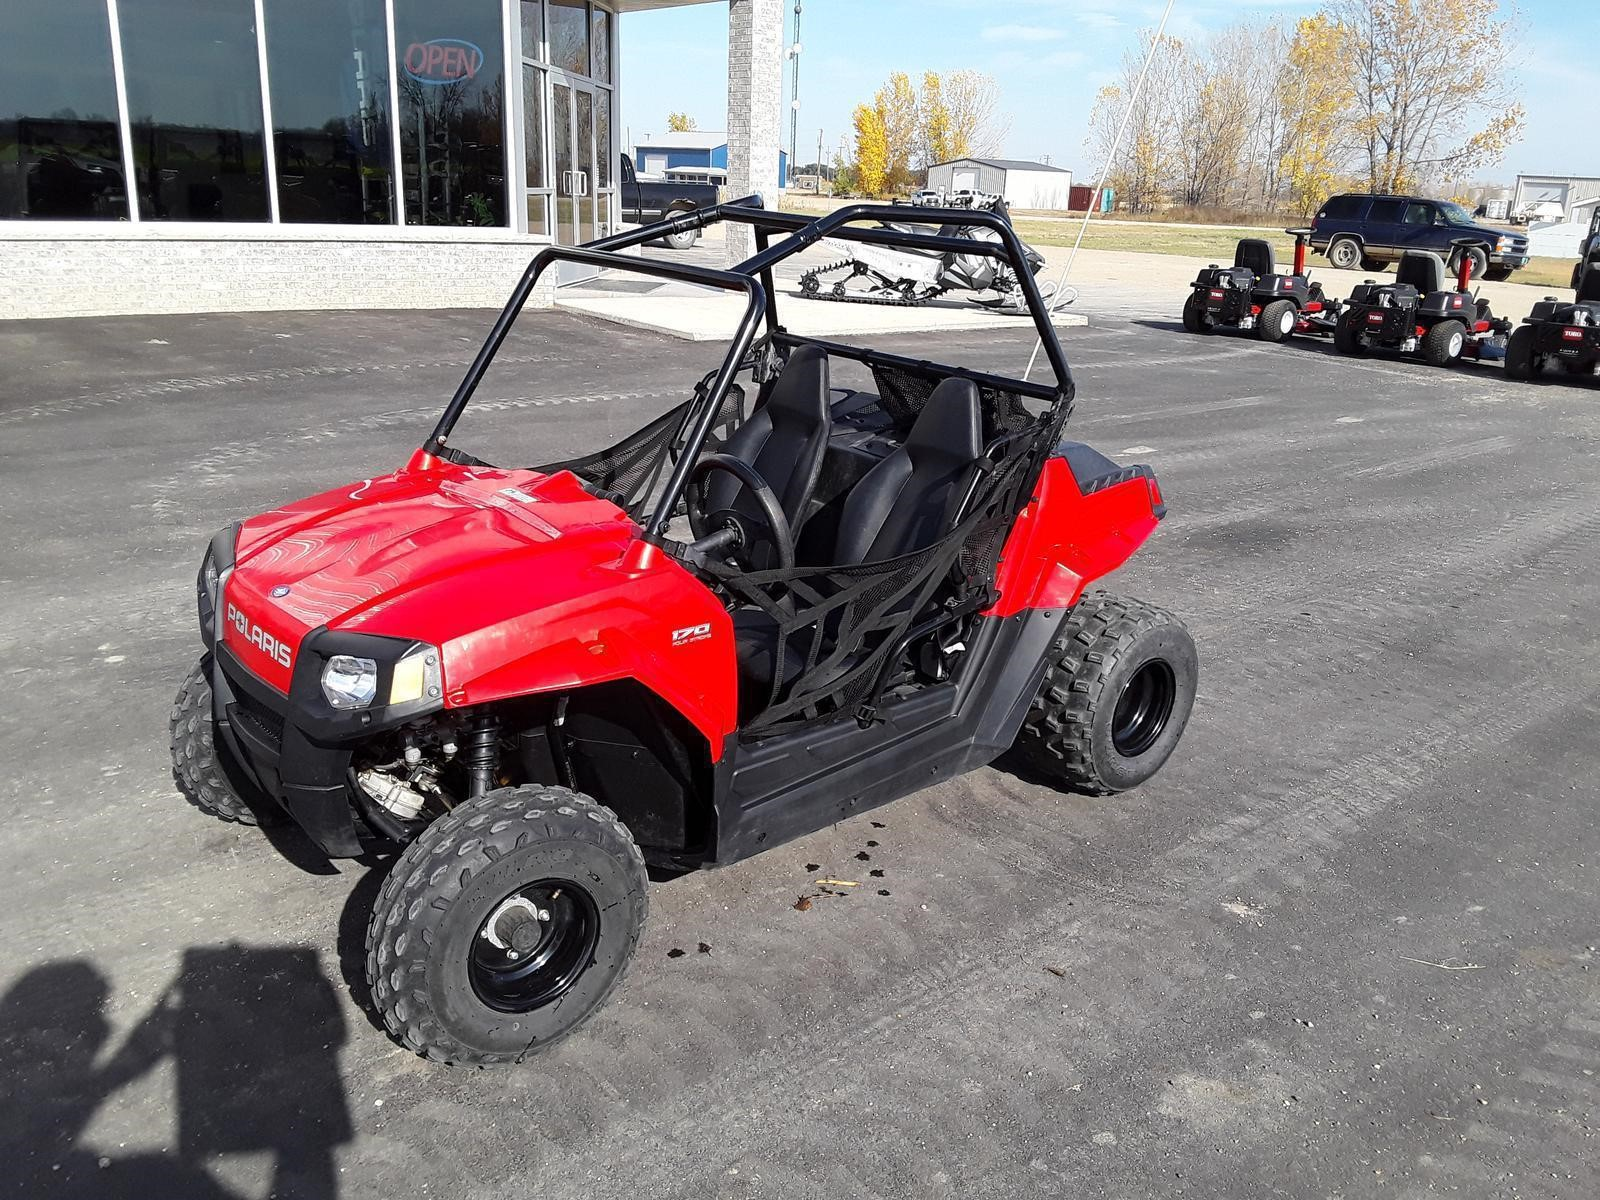 2014 POLARIS RZR 170 EFI For Sale in Hankinson, North Dakota